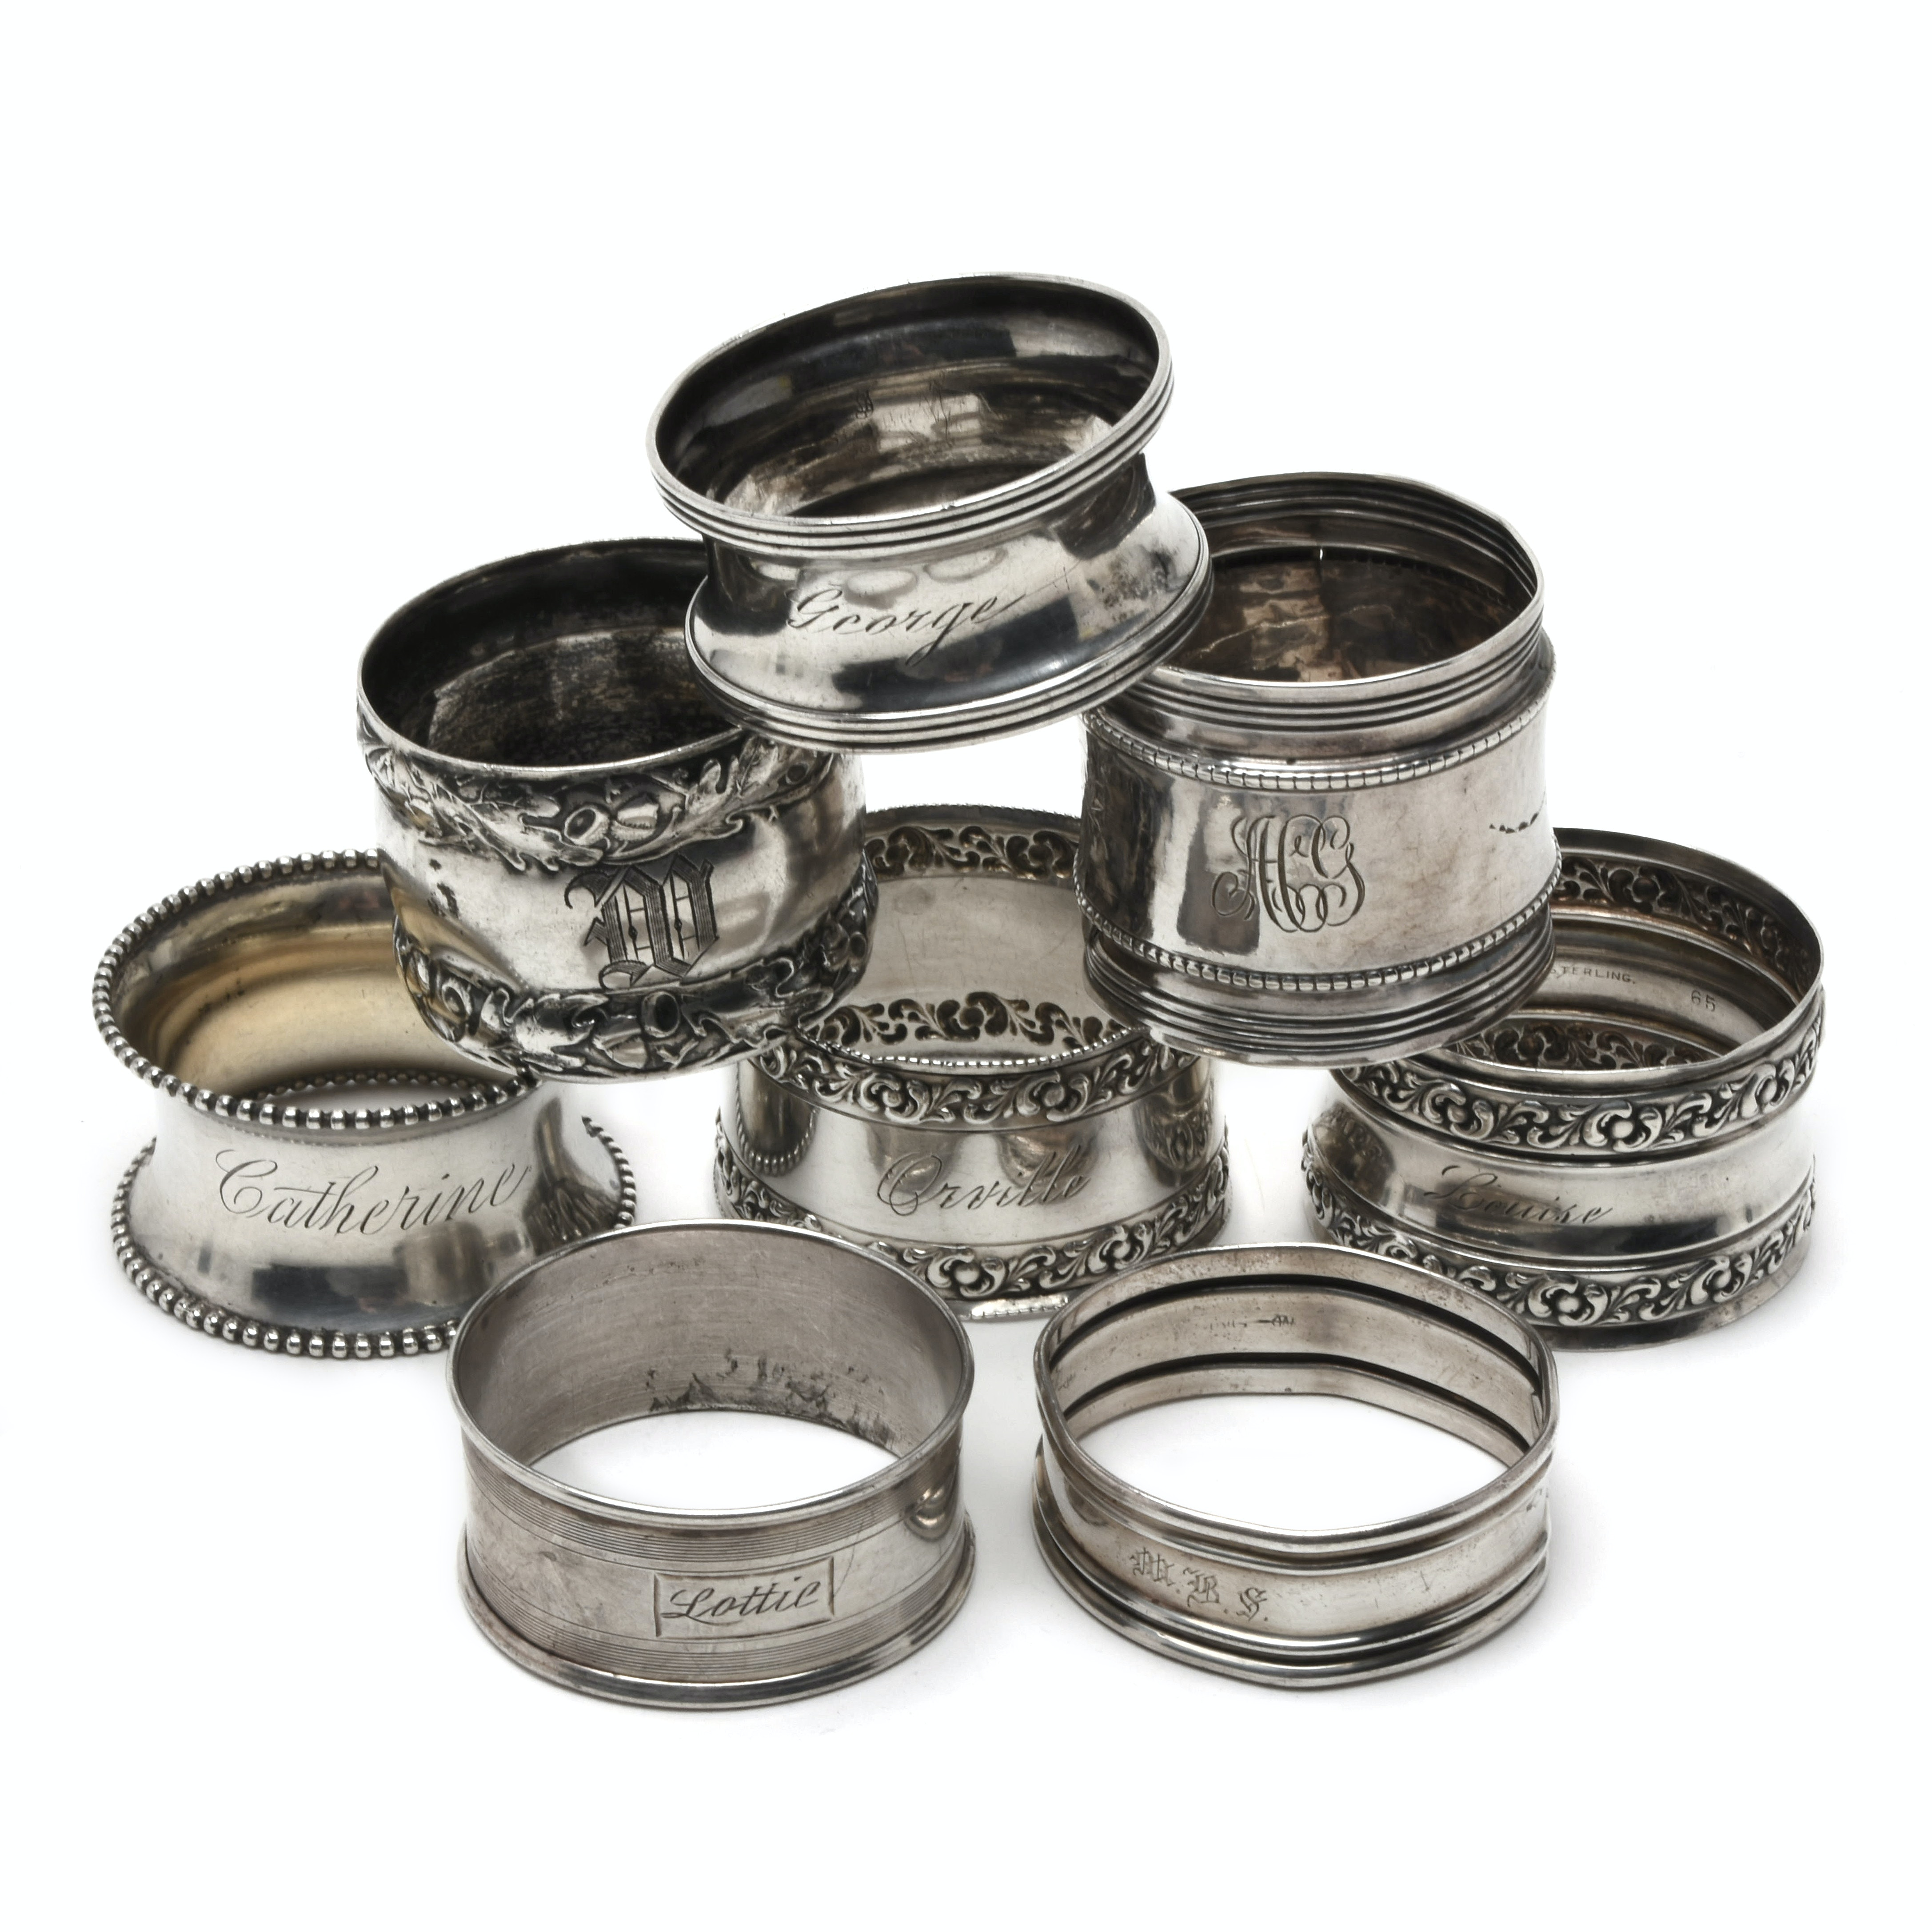 Eight Antique Sterling Silver Napkin Rings Assorted Styles and Makers